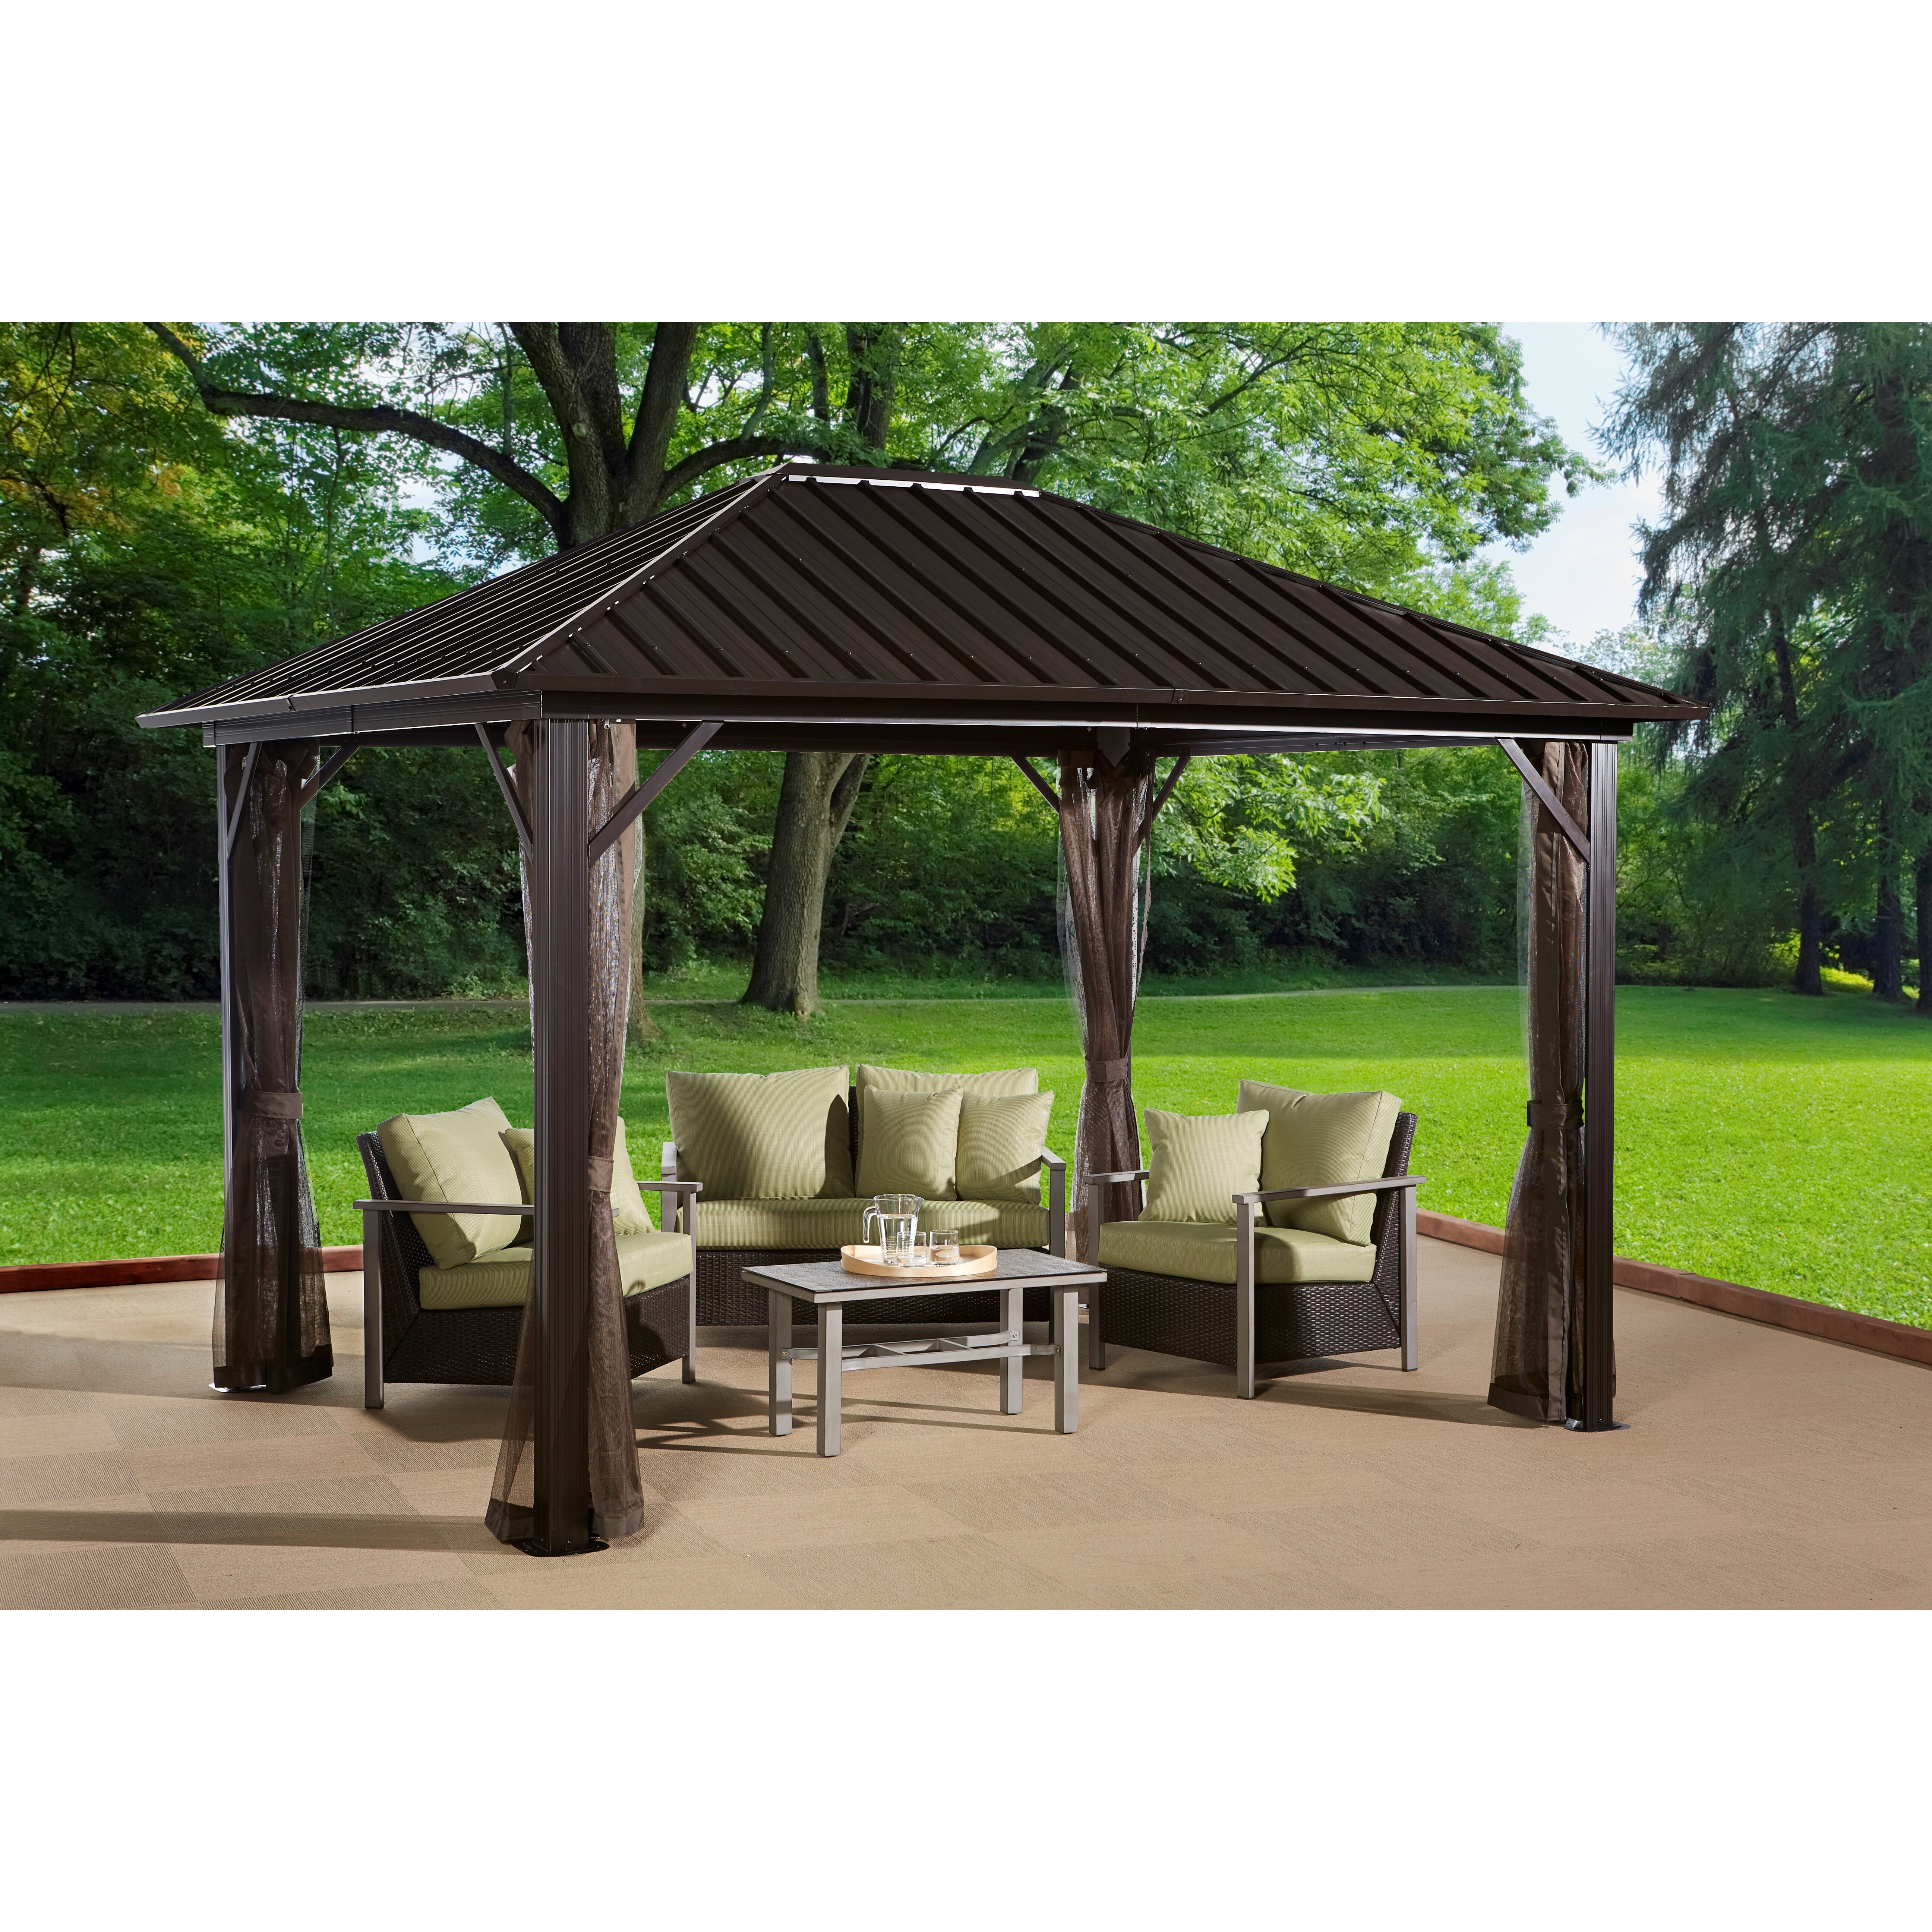 Sojag Genova 16 Ft W X 12 Ft D Metal Permanent Gazebo